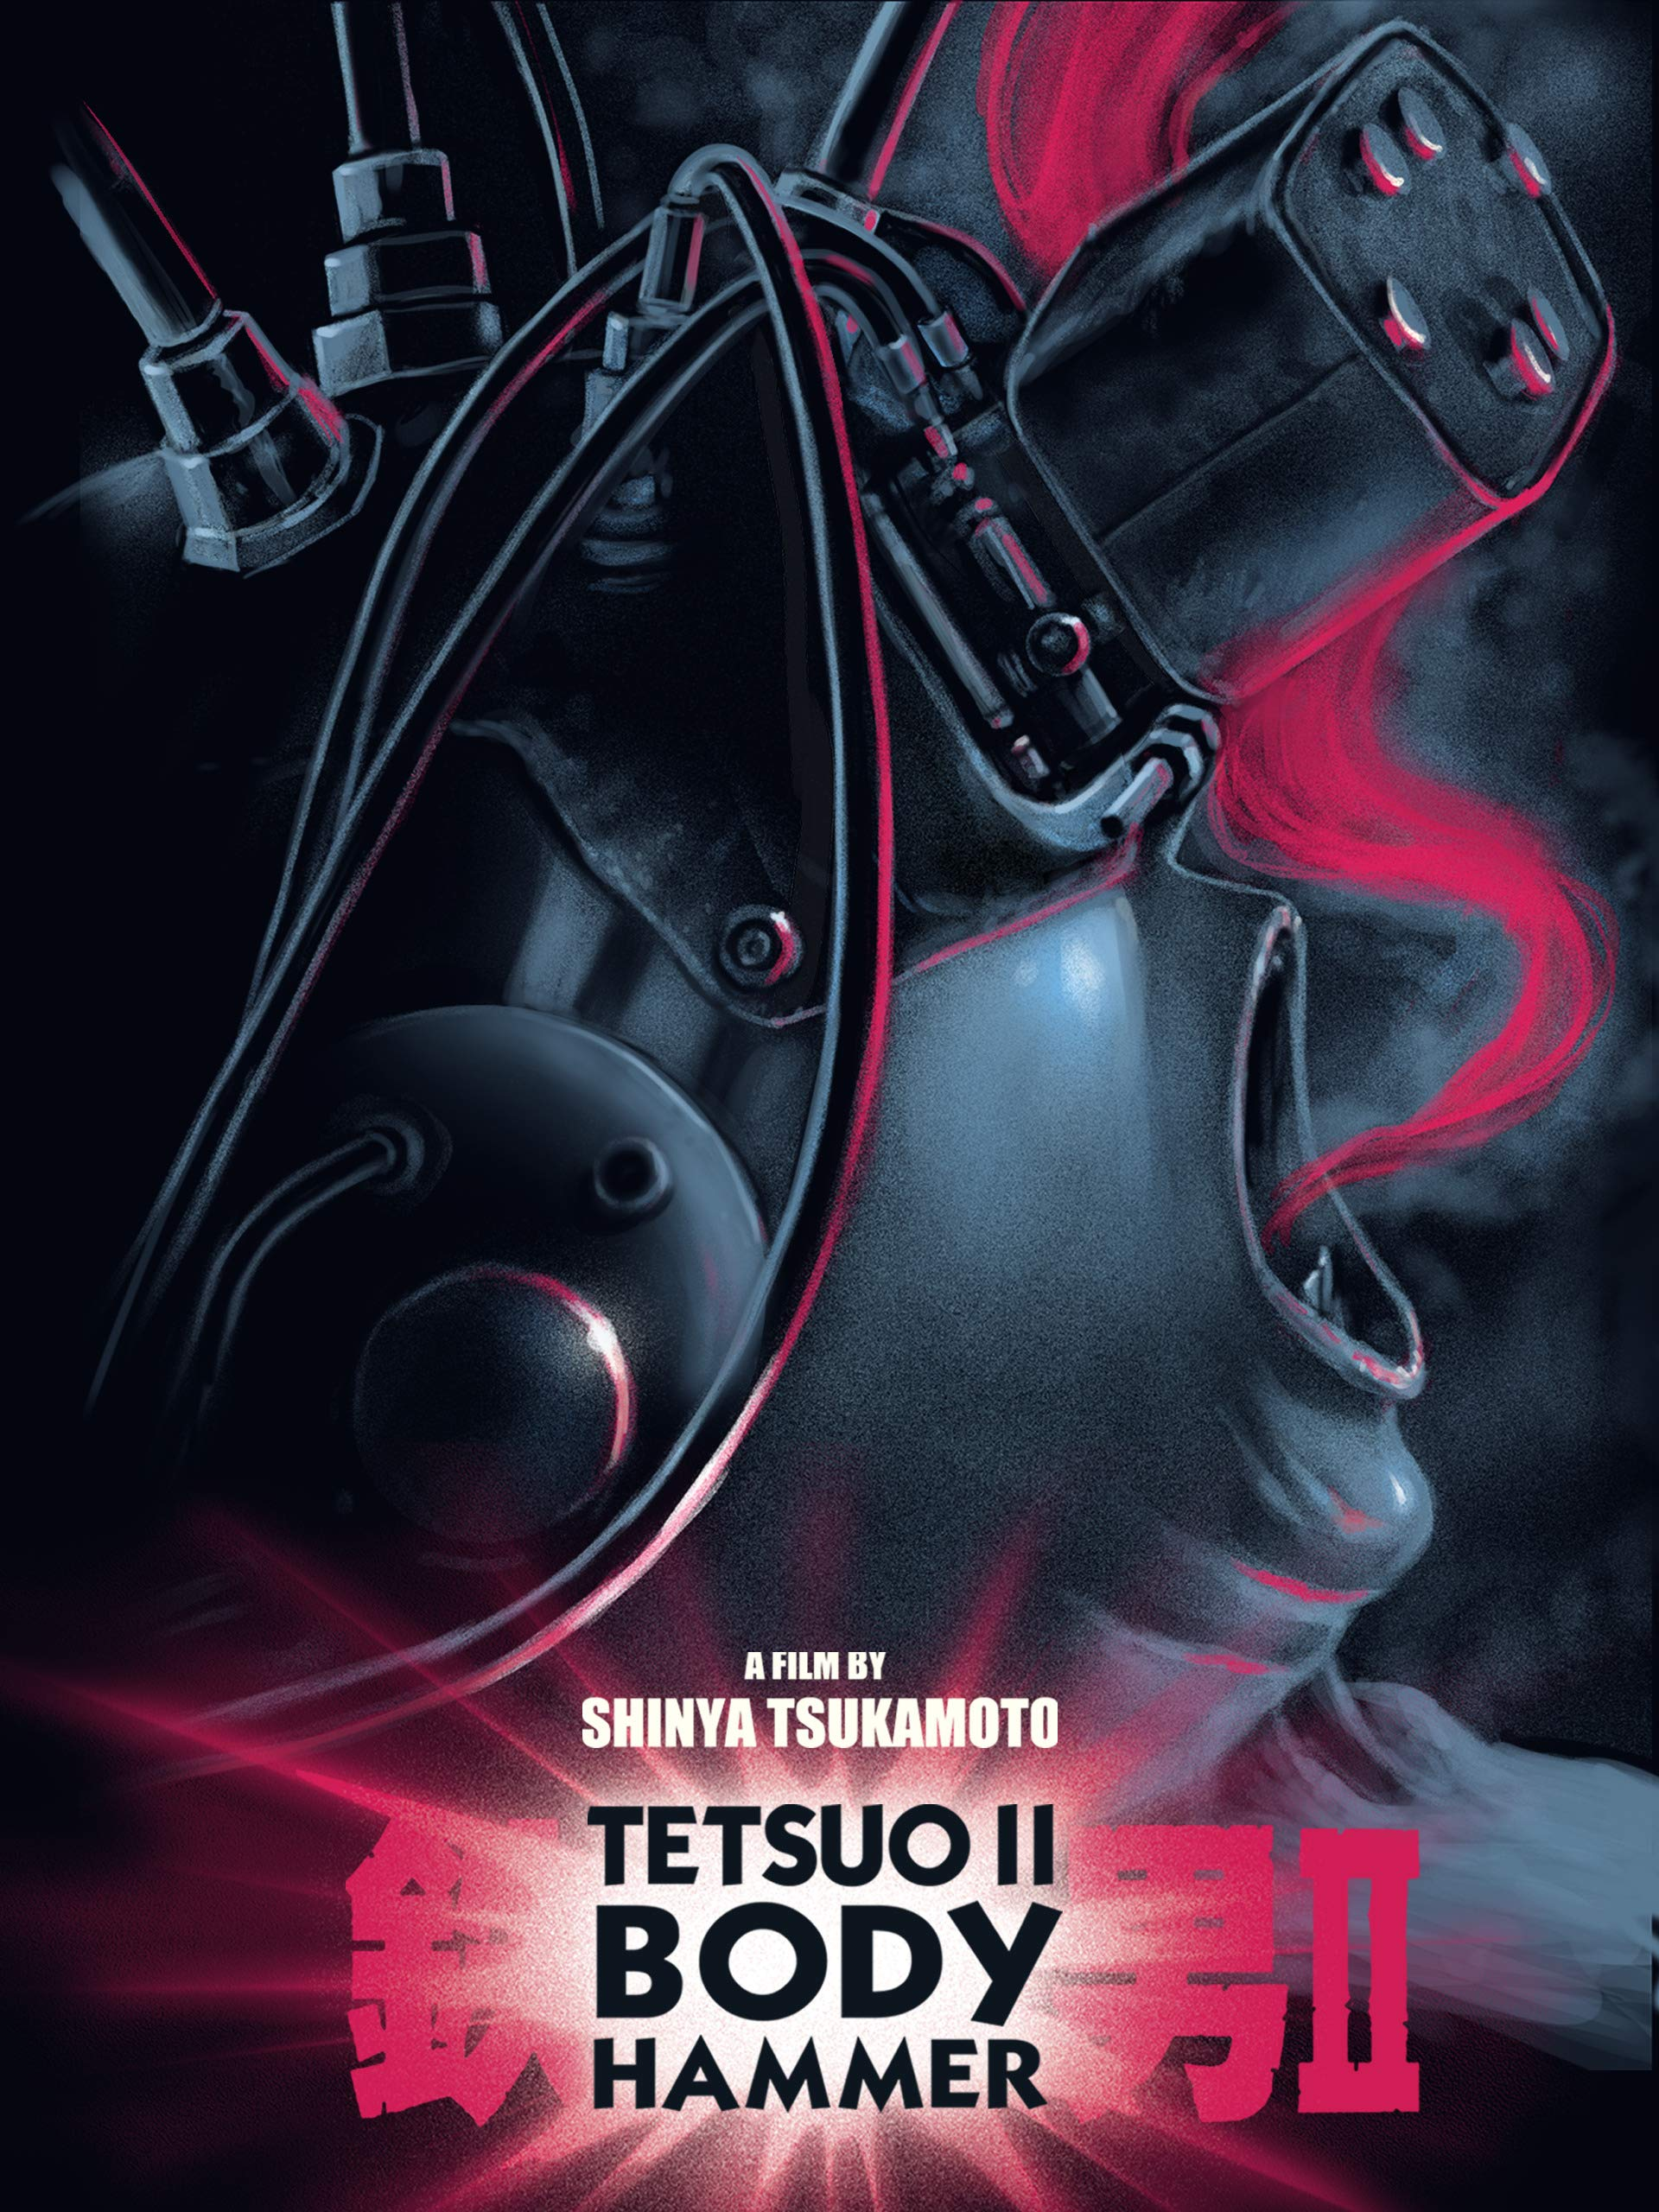 Watch Tetsuo II: Body Hammer | Prime Video